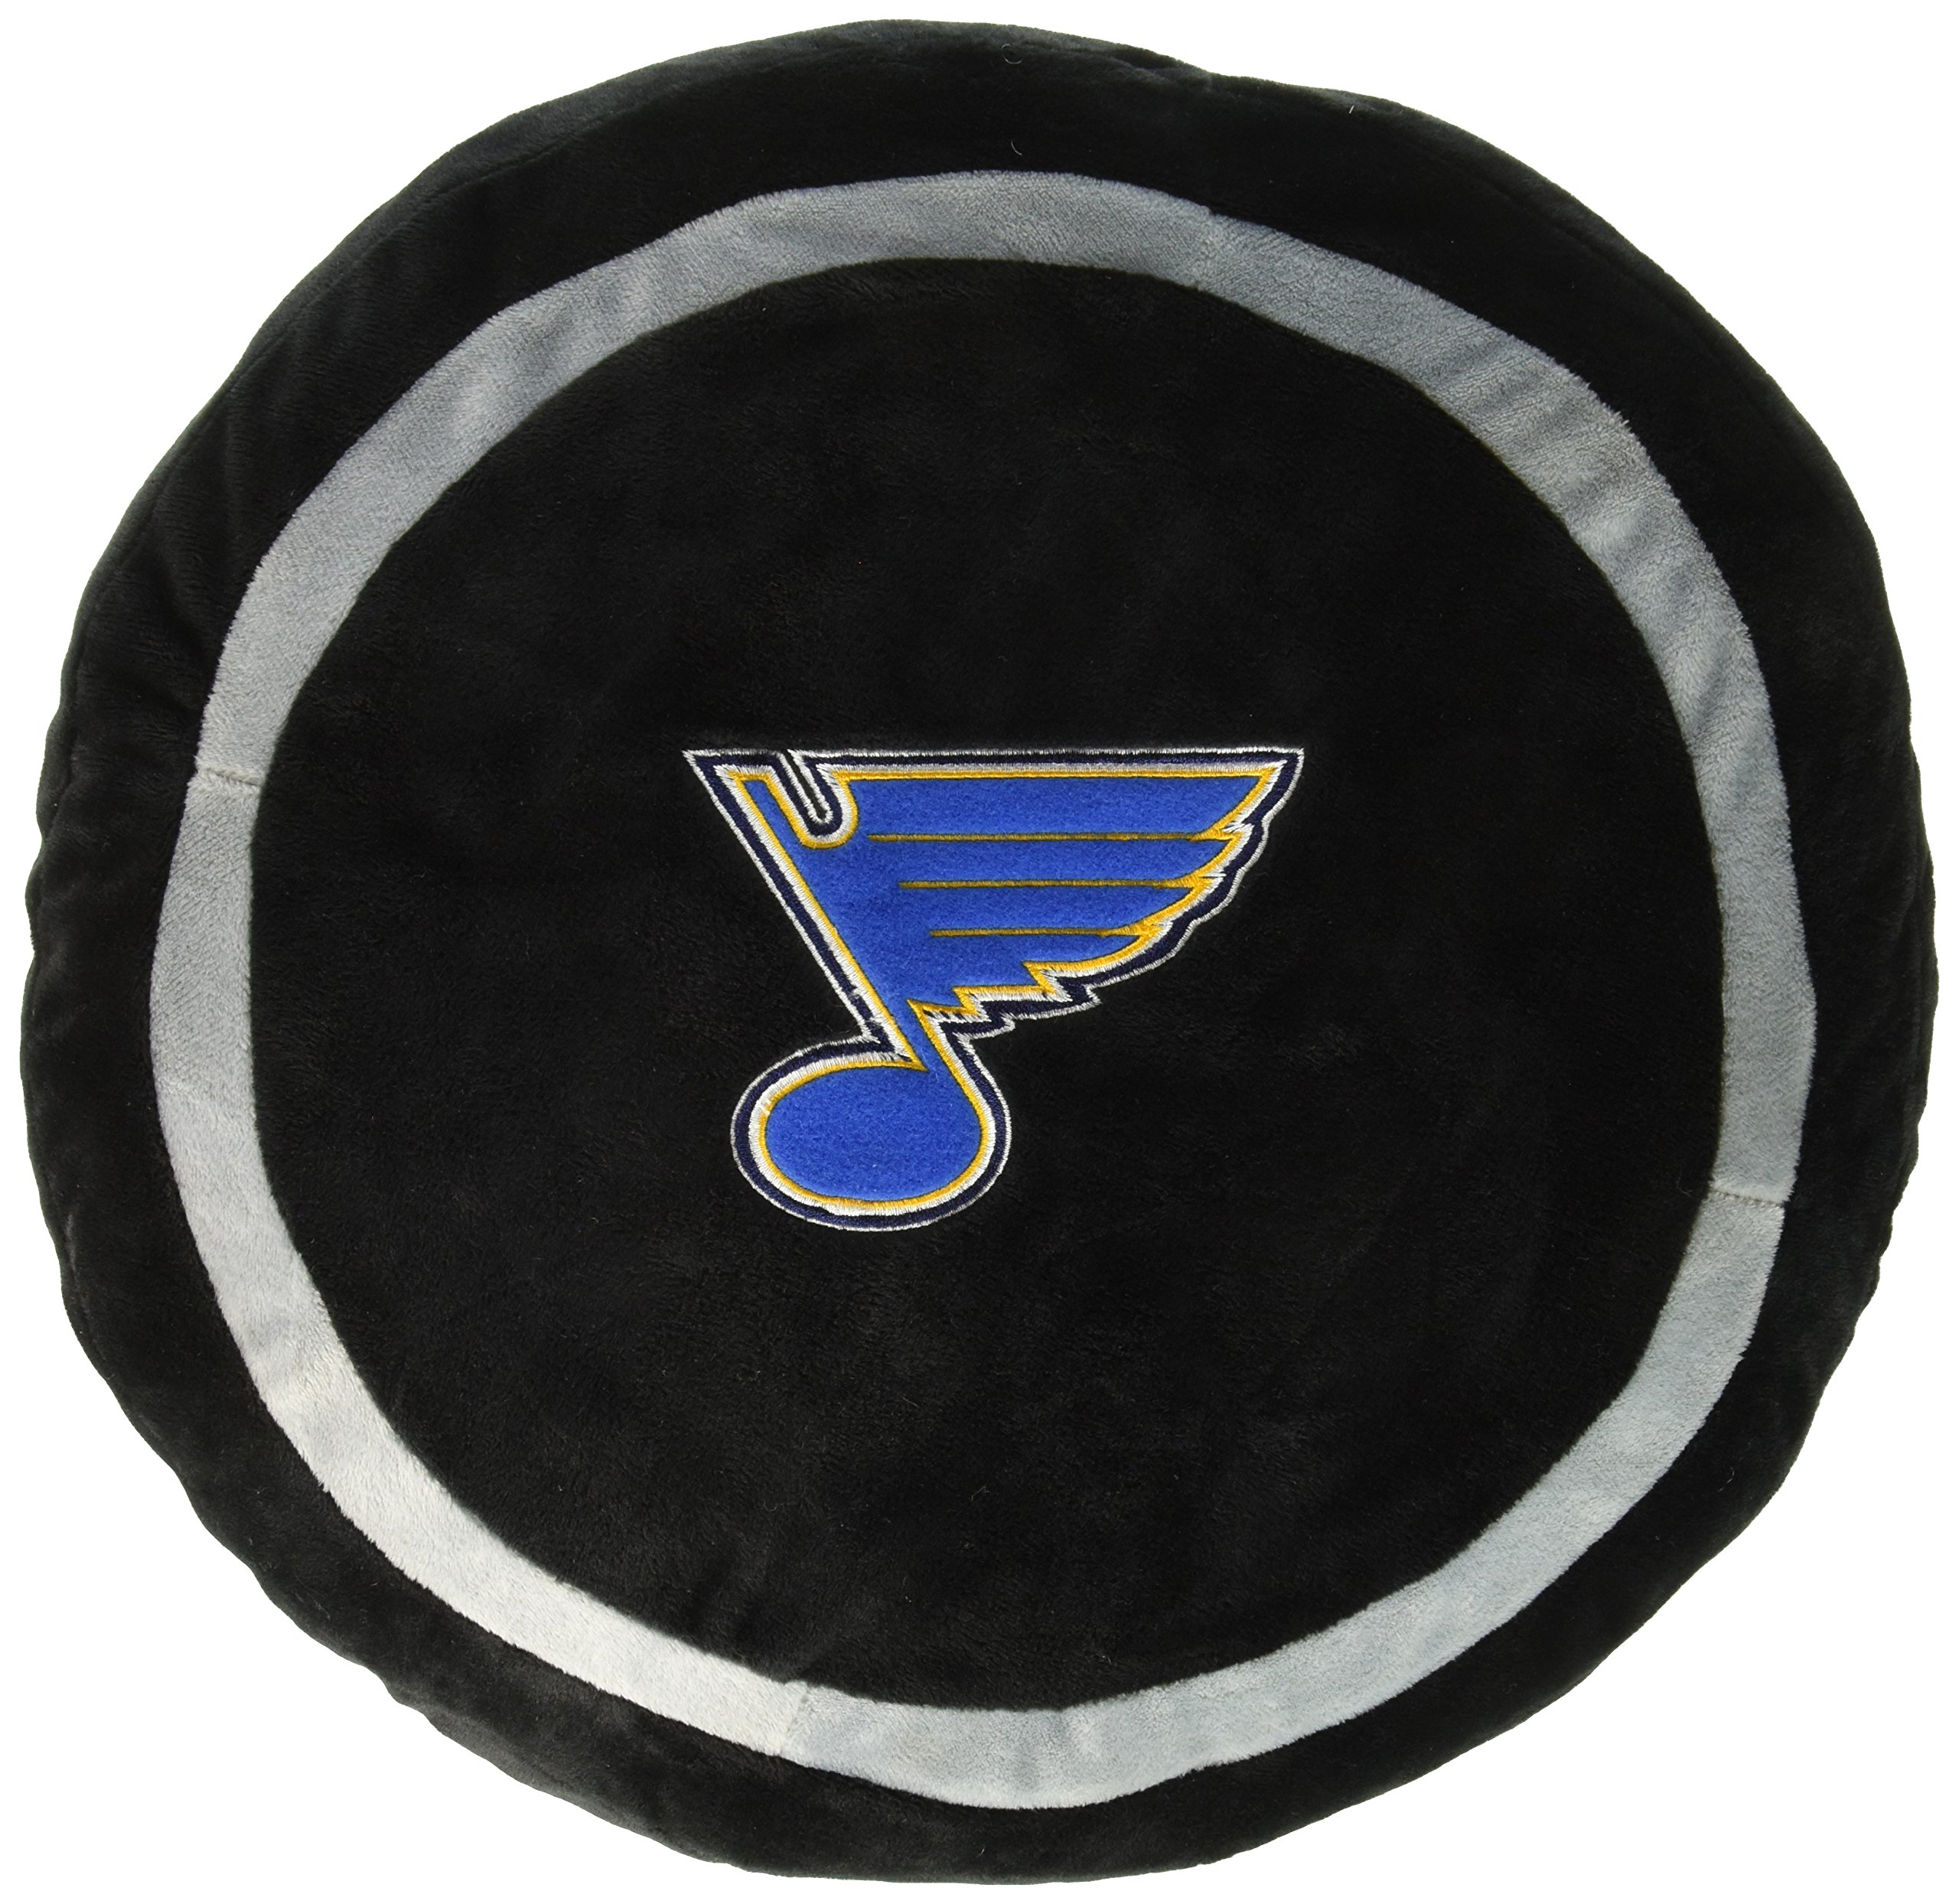 The Northwest Company Officially Licensed NHL St. Louis Blues 3D Sports Pillow, 19'', Multi Color by The Northwest Company